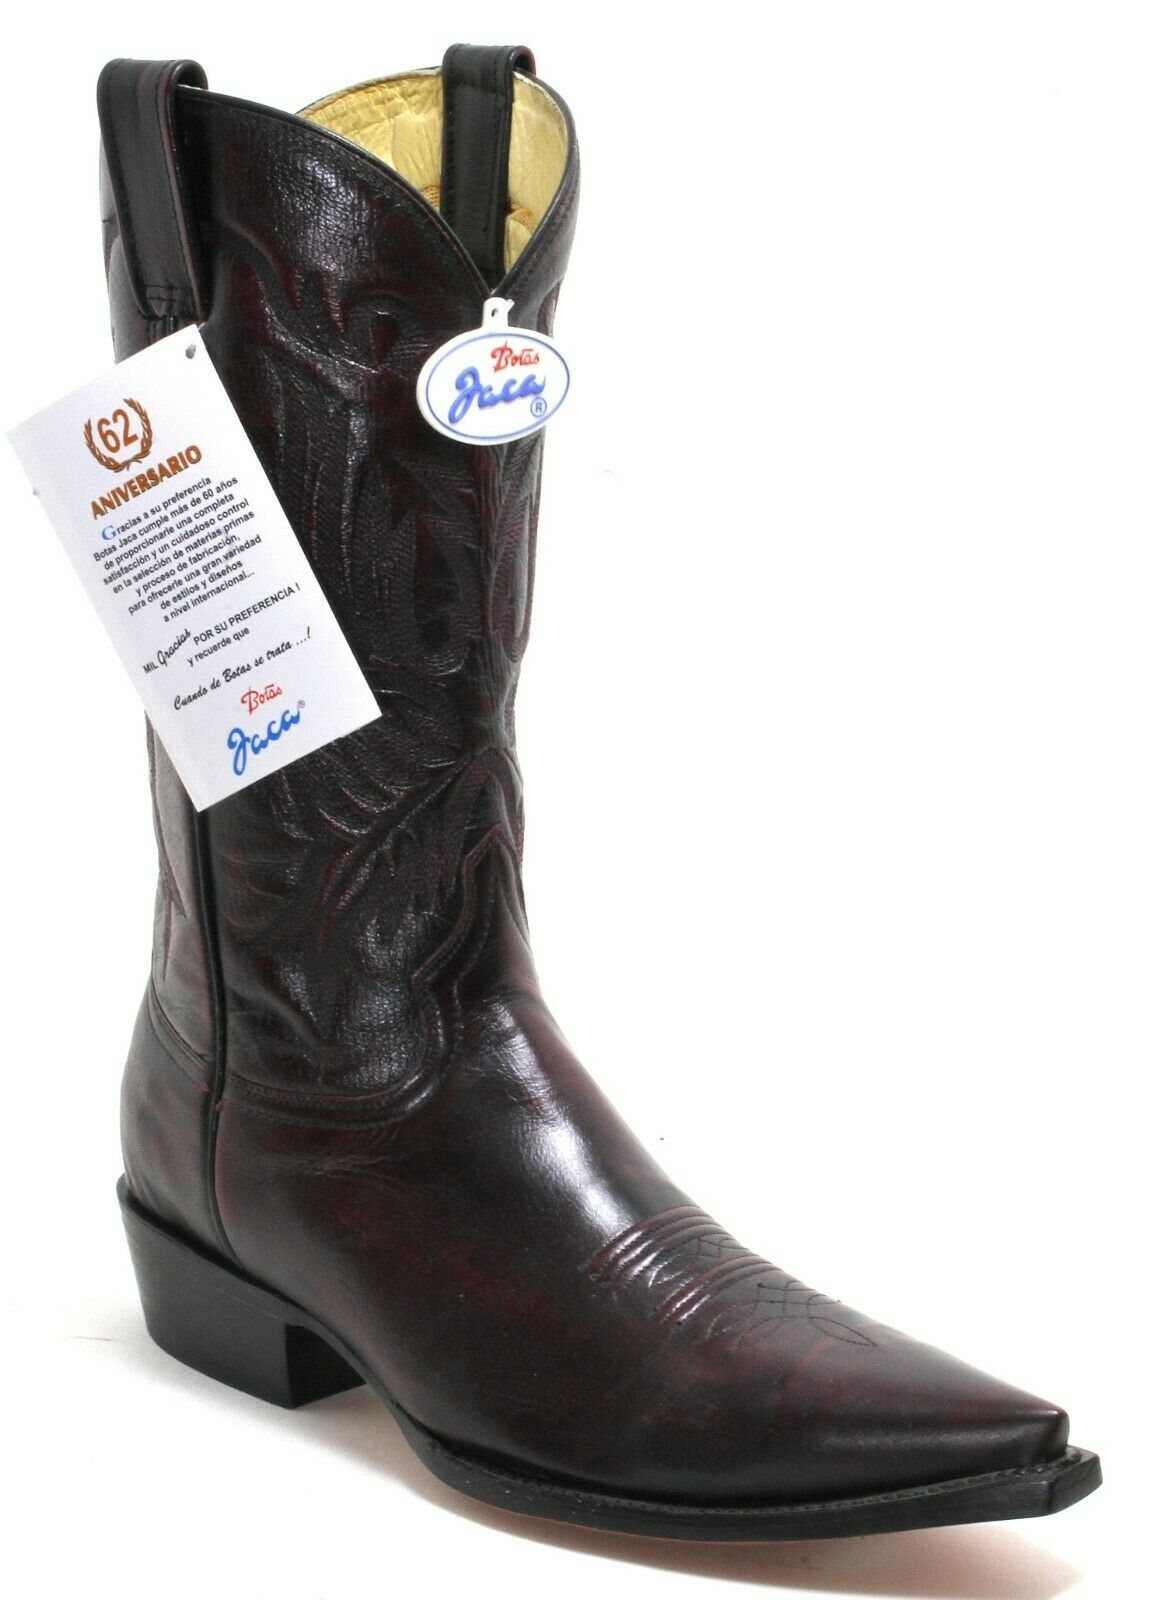 2 Cowboy Boots Western Boots Texas Catalan Style Boots Jaca Boots 39,5 - 40